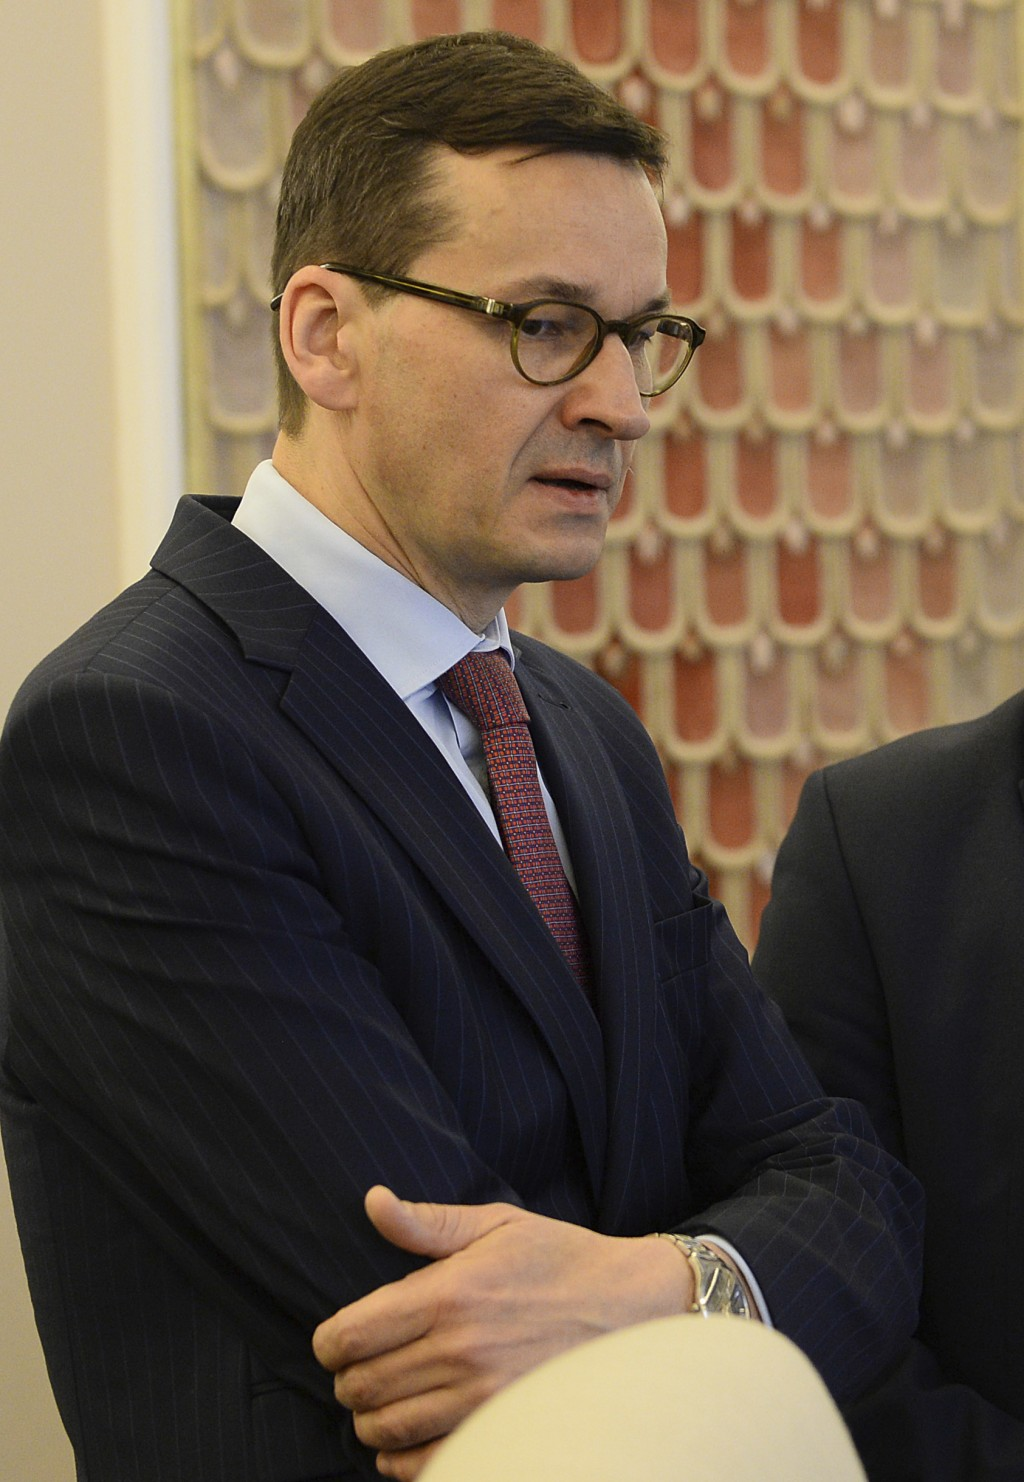 Poland's Finance Minister Mateusz Morawiecki waits for the start of a government meeting in Warsaw, Poland, Tuesday, Dec. 5, 2017. Poland's Prime Mini